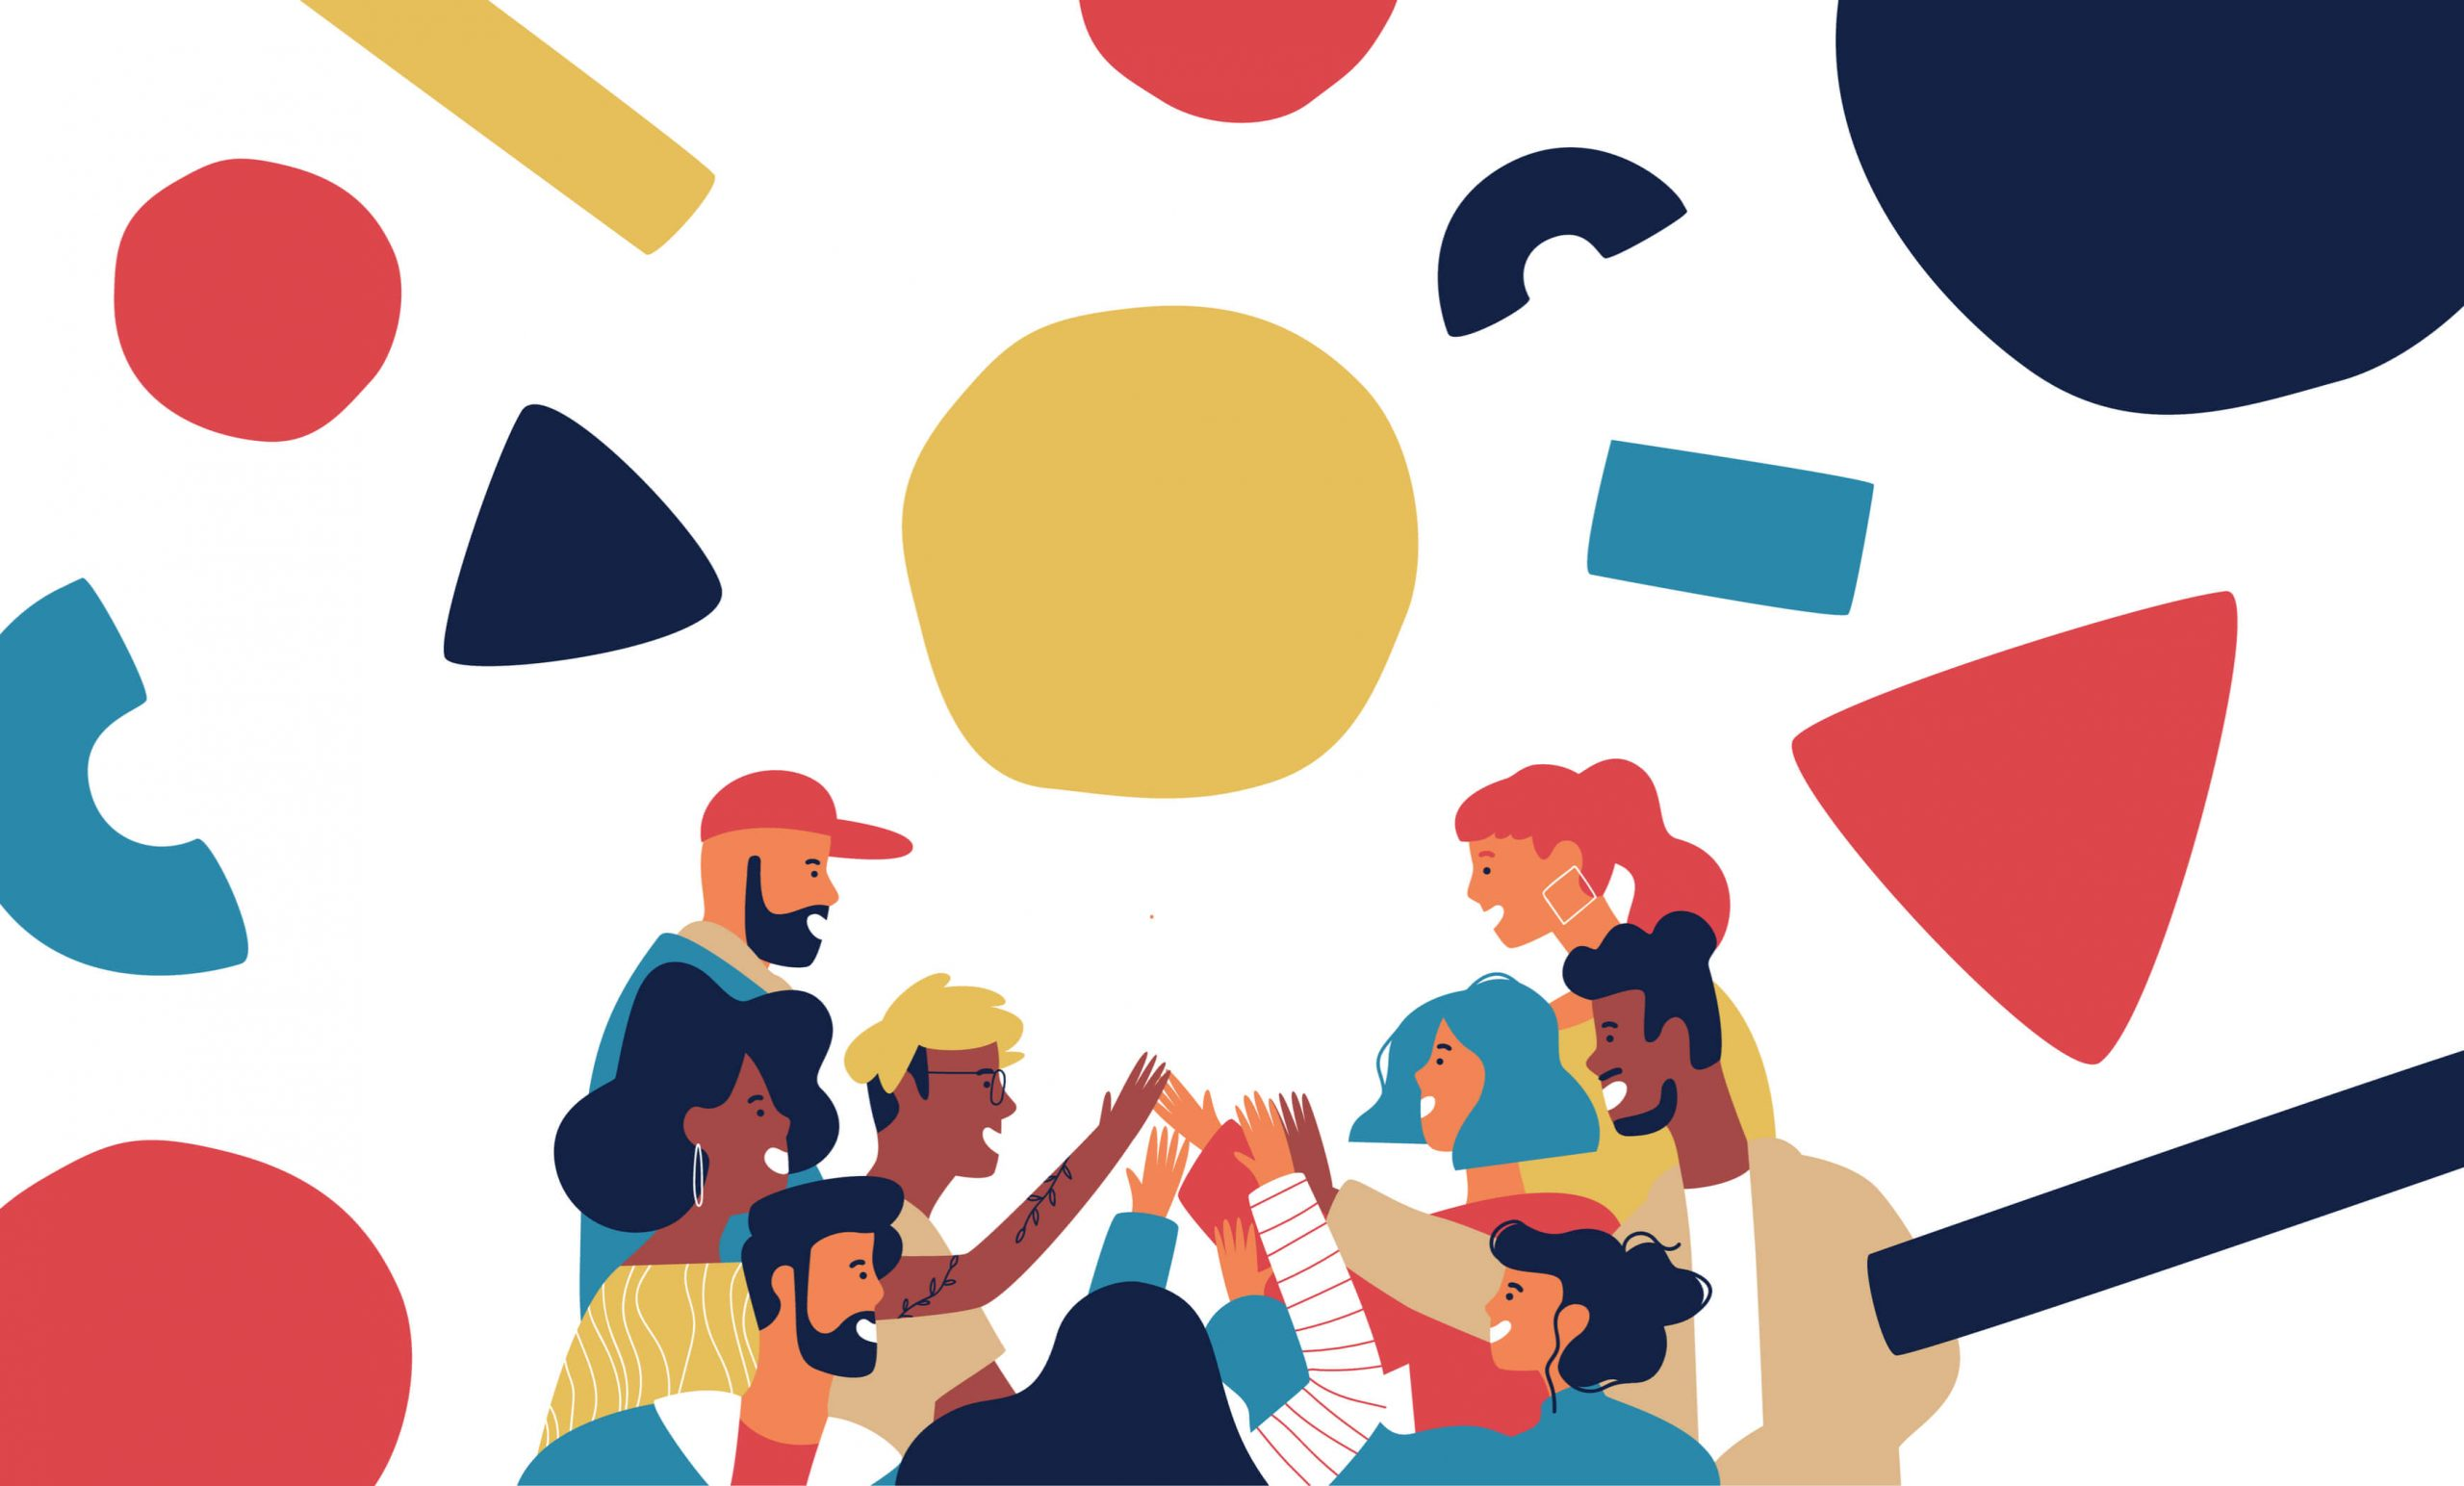 characteristics of an inclusive workplace culture - emberin diversity and inclusion programs